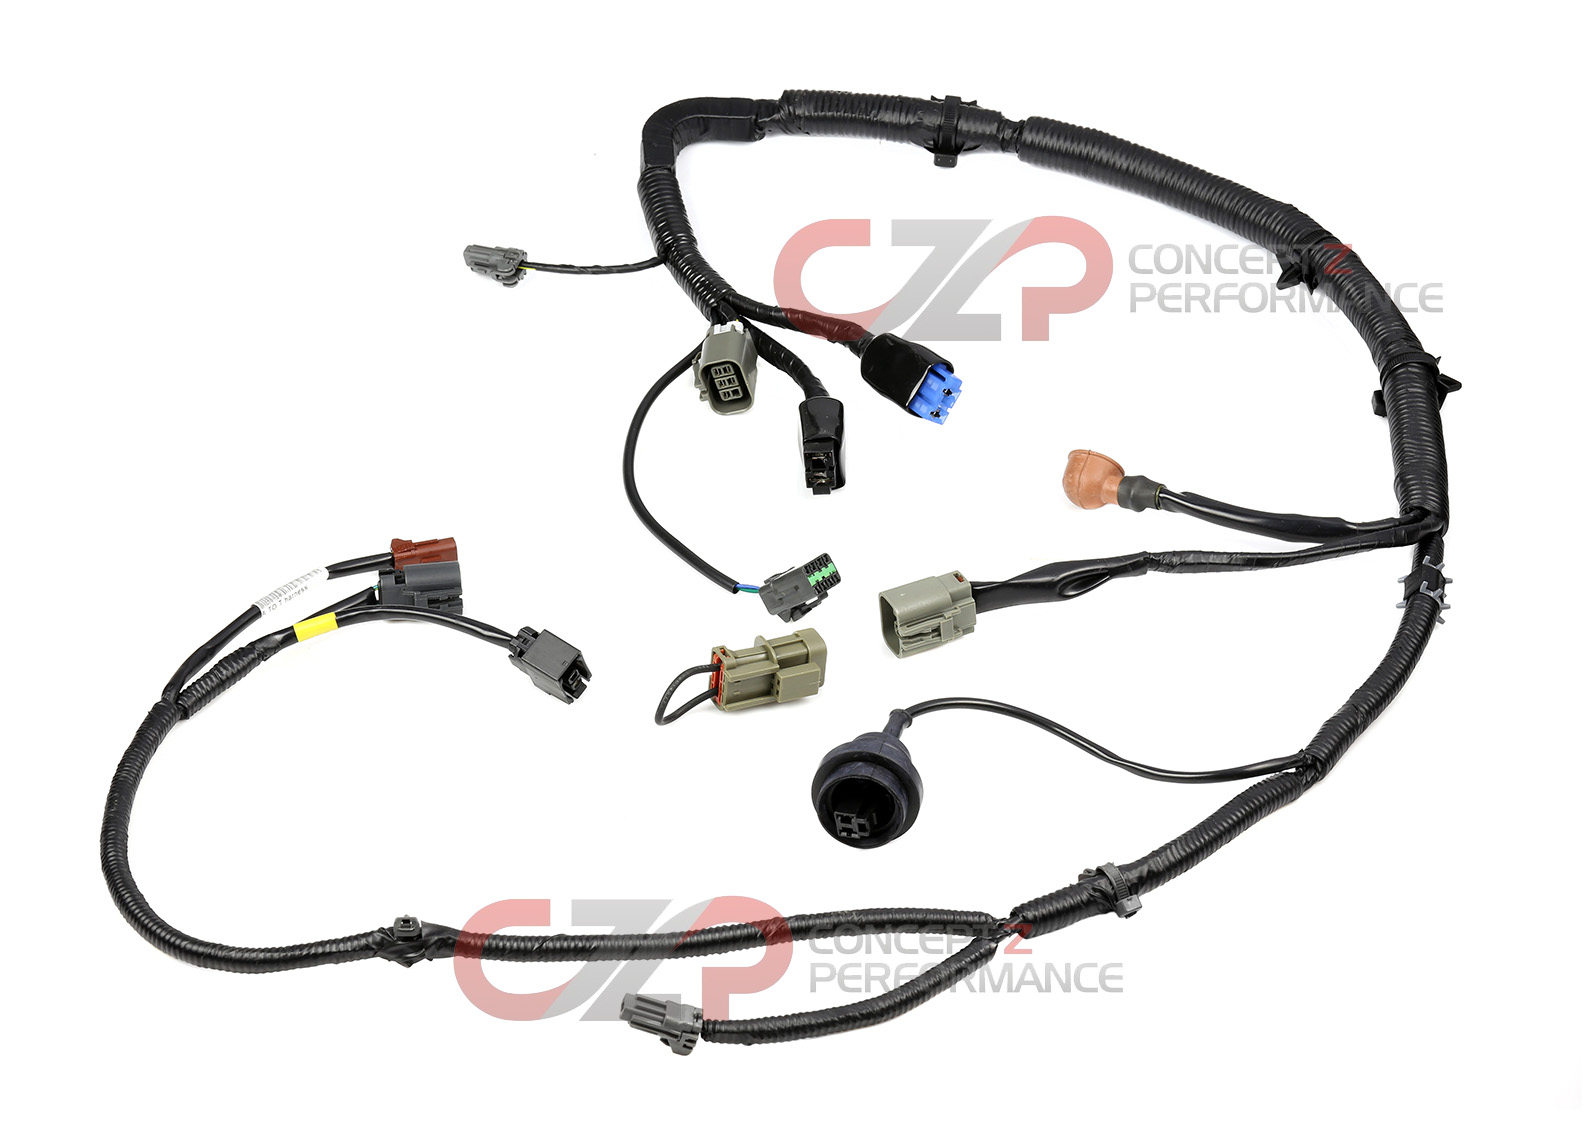 main wiring specialties alternator to transmission harness automatic at alternator wiring harness at eliteediting.co